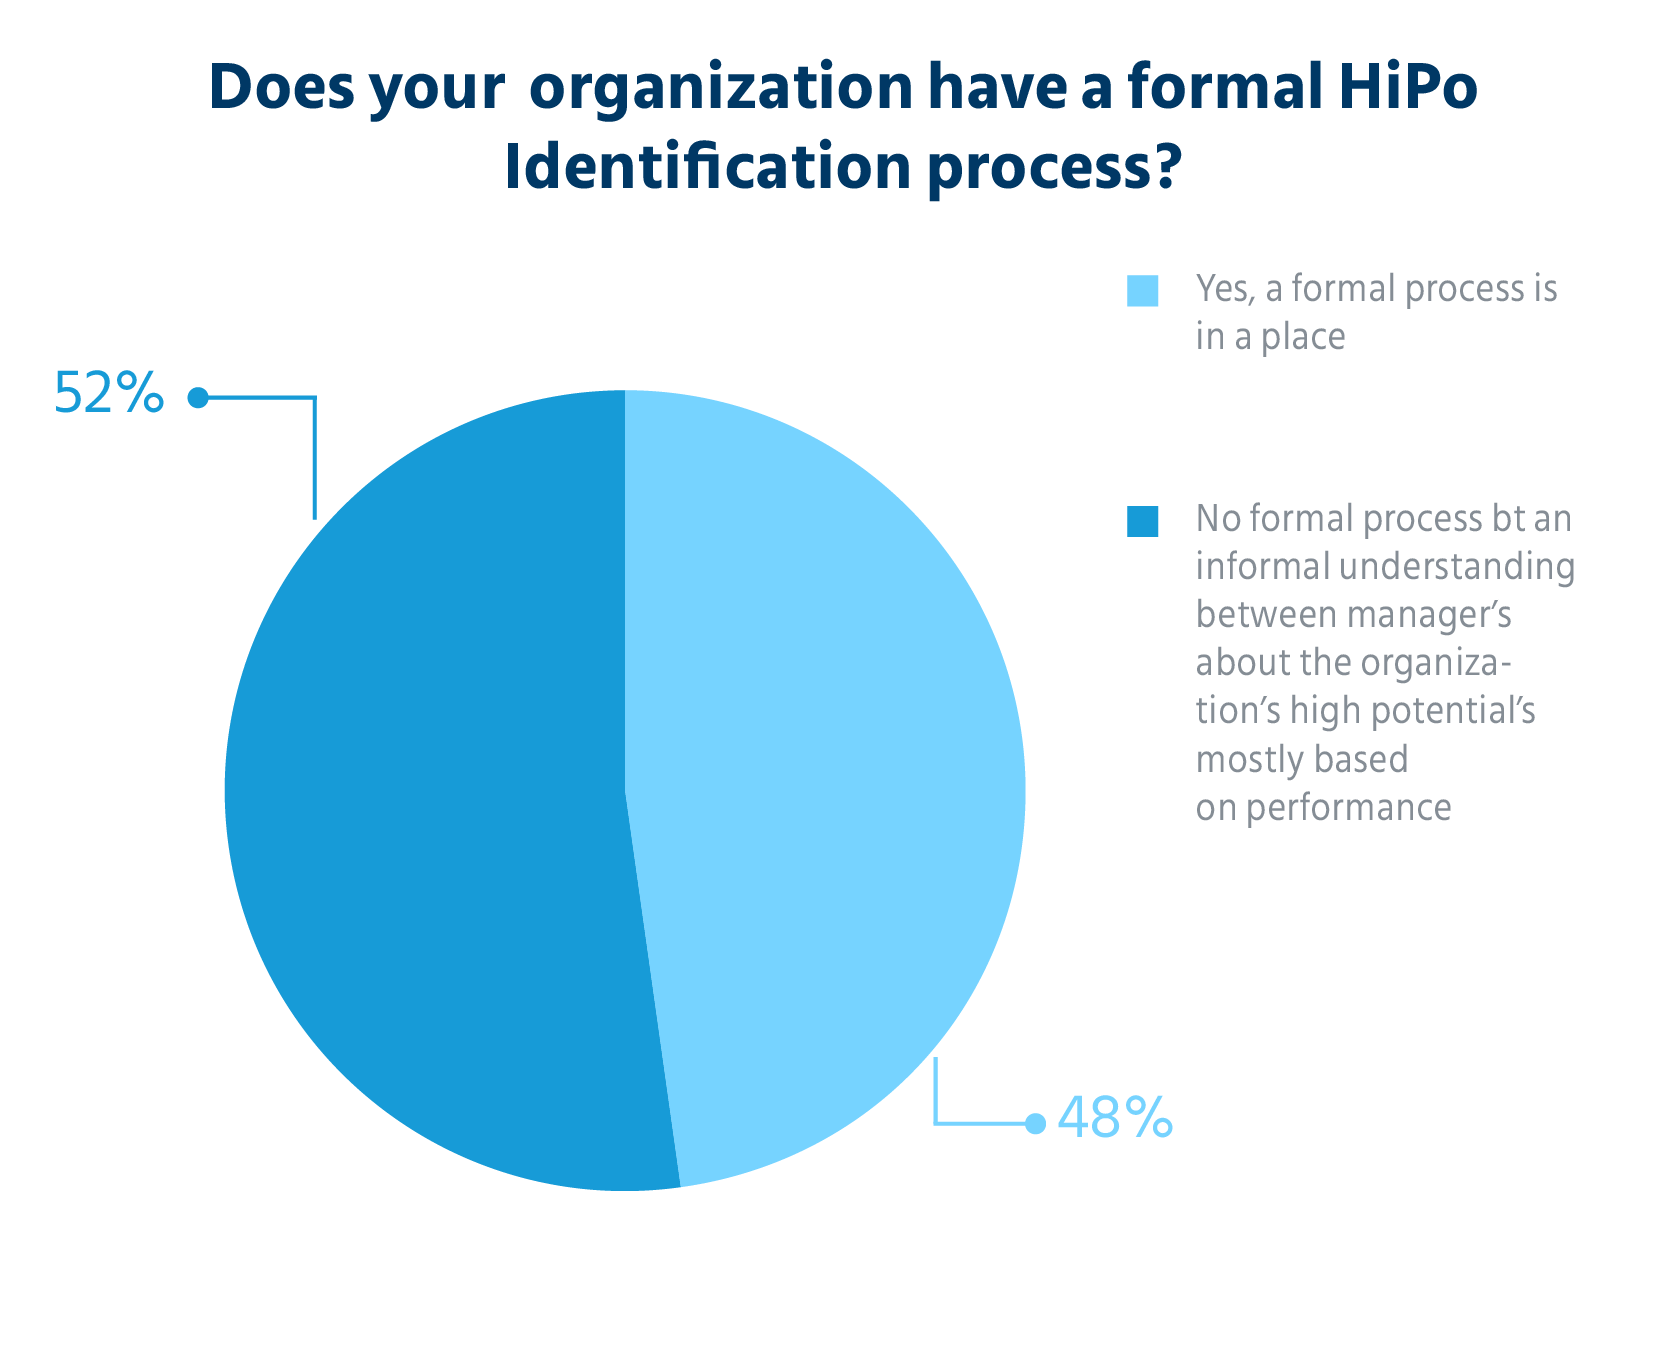 does_your_organization_have_a_formal_HiPo_identification_process